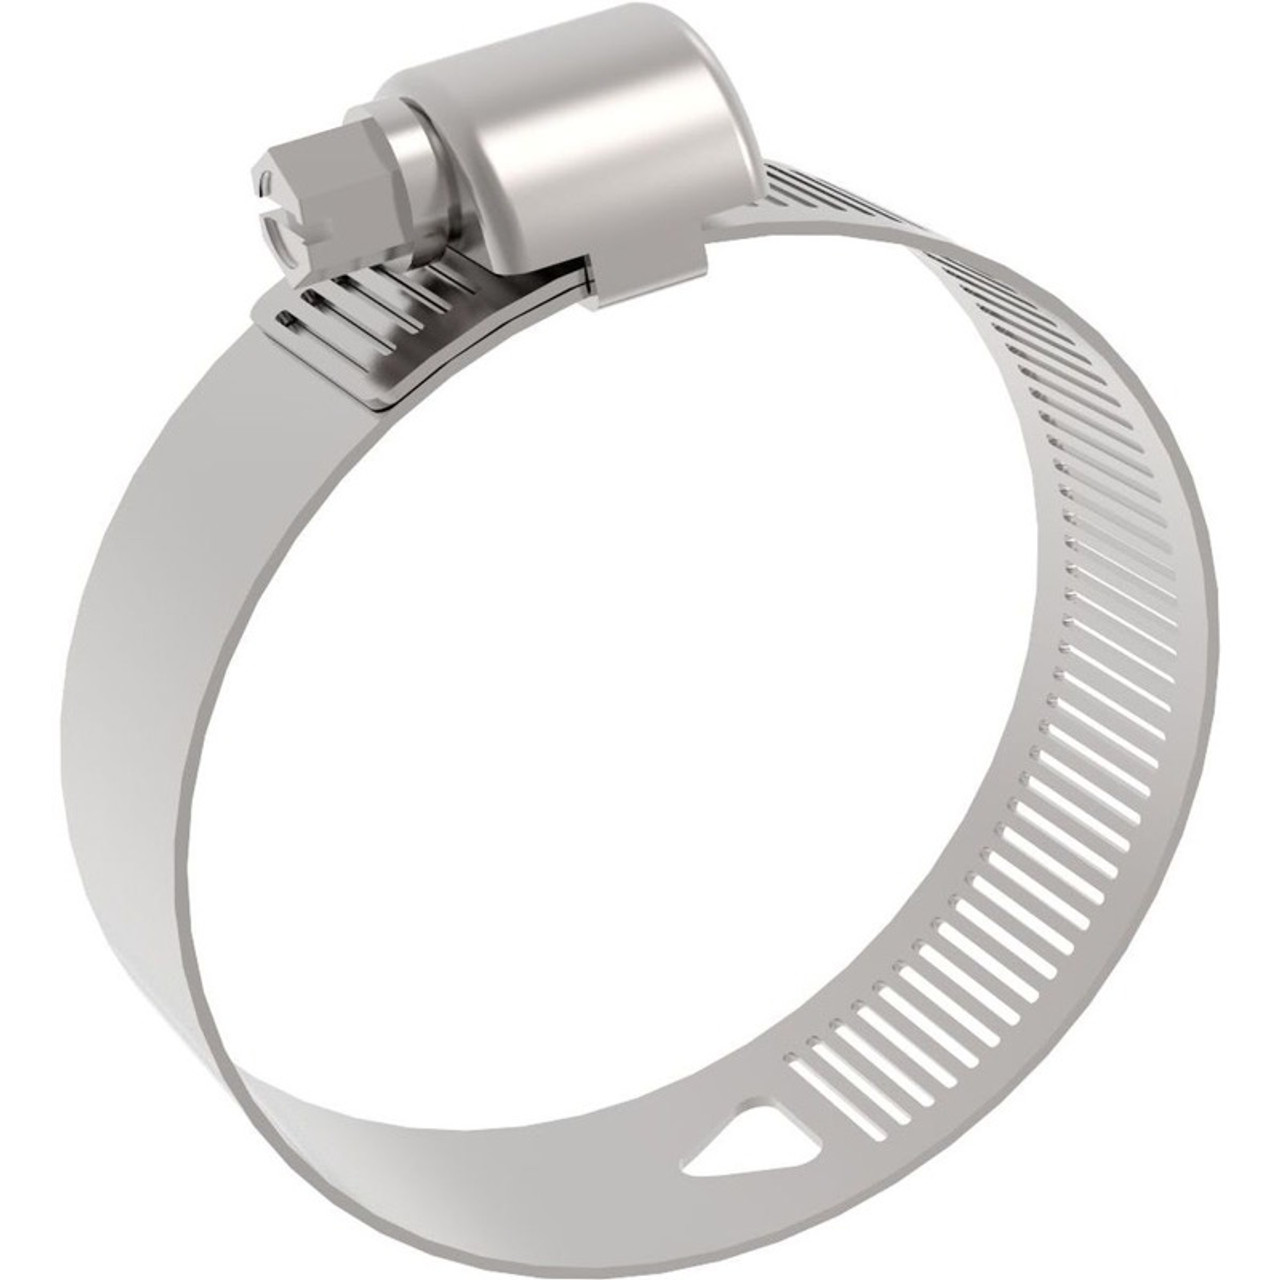 Hose Clamp #32 2""